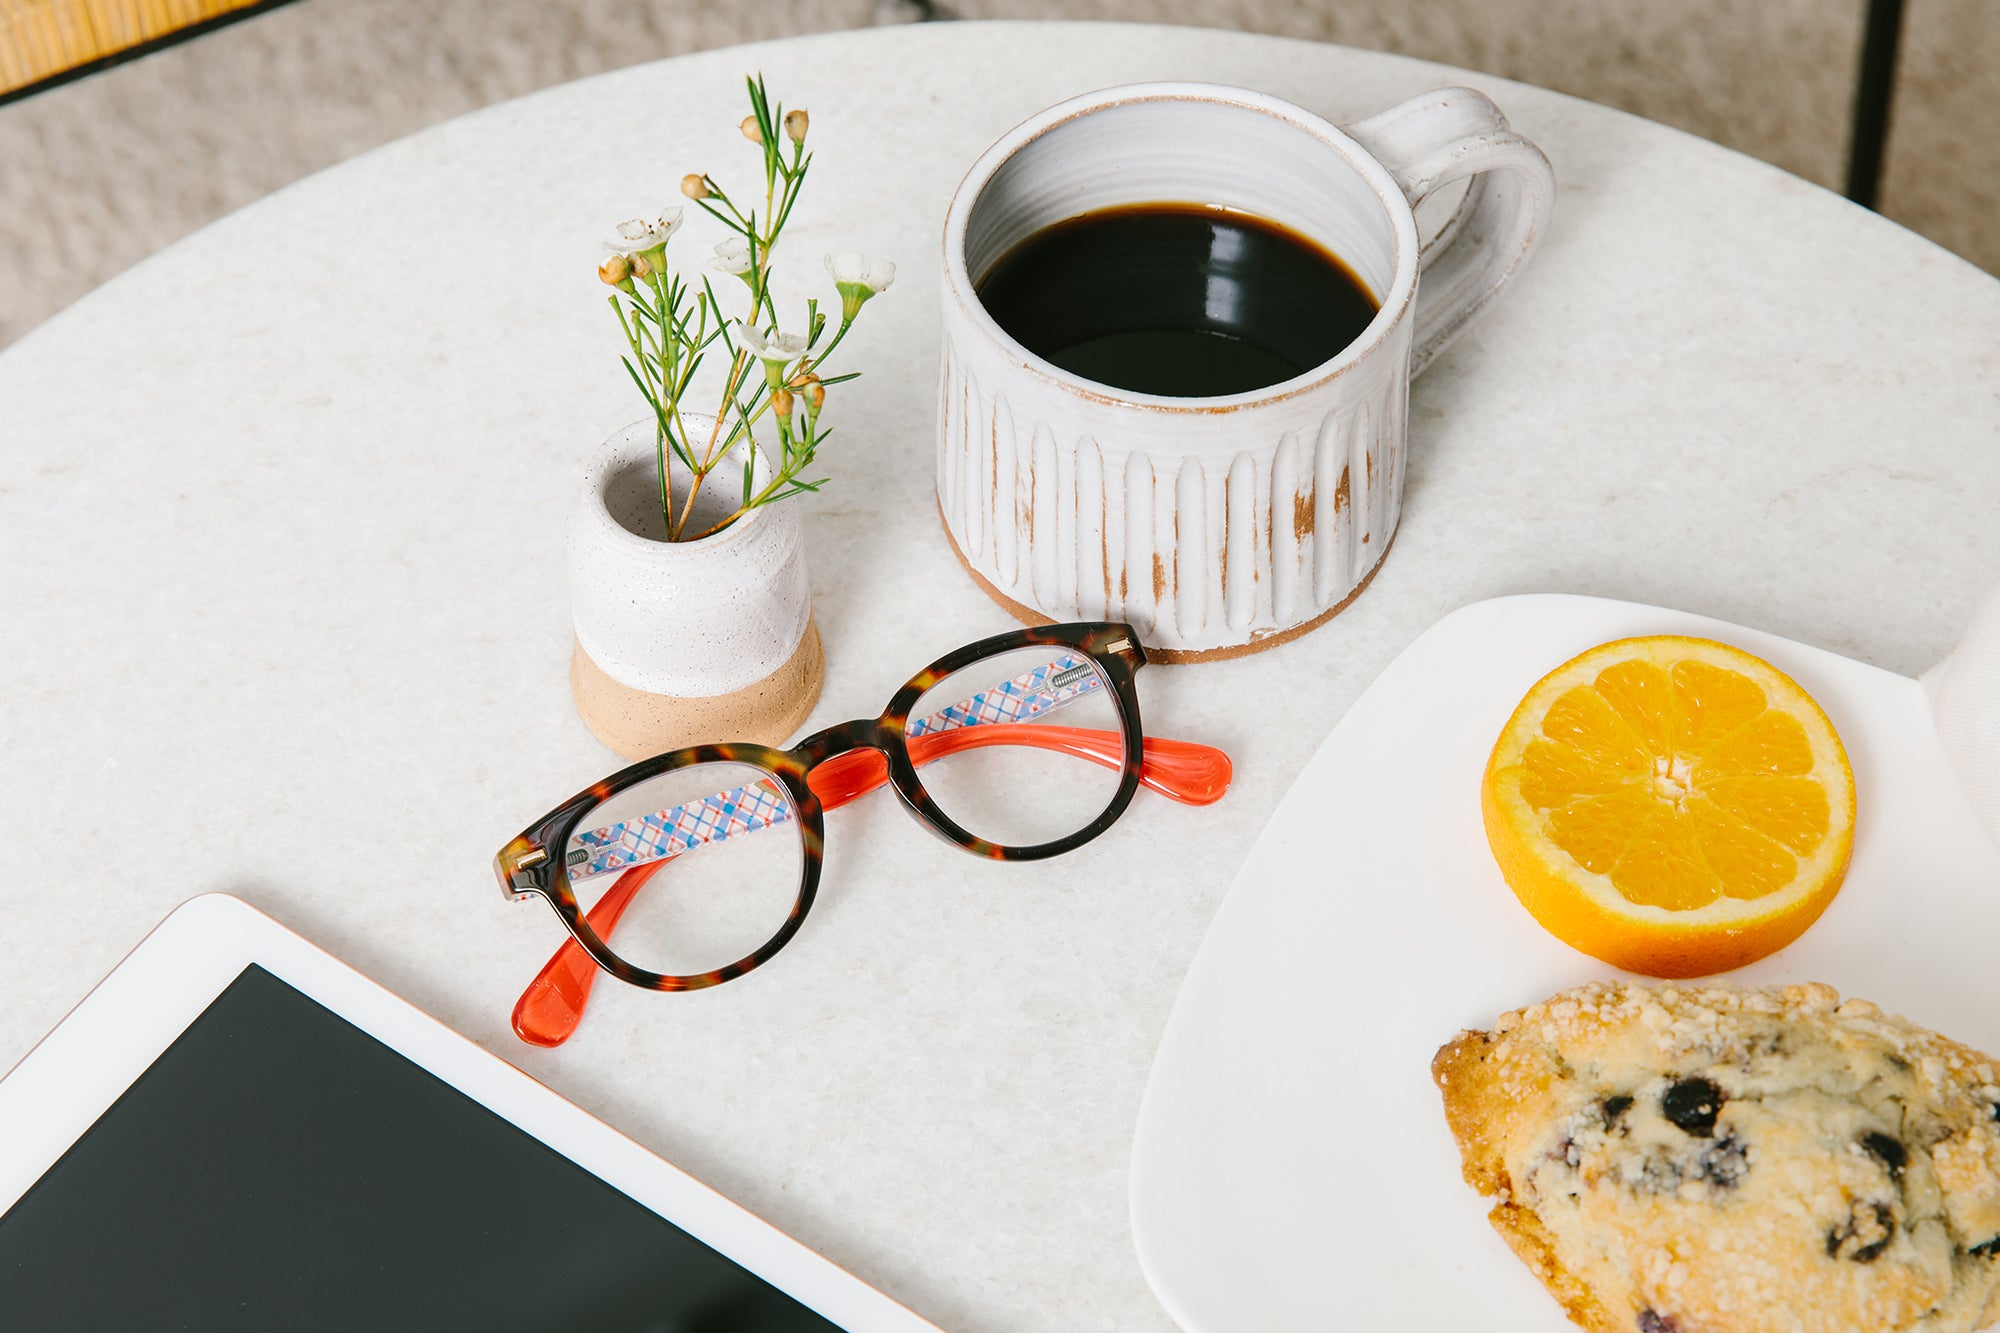 Peepers blue light reading glasses sitting on a table with breakfast